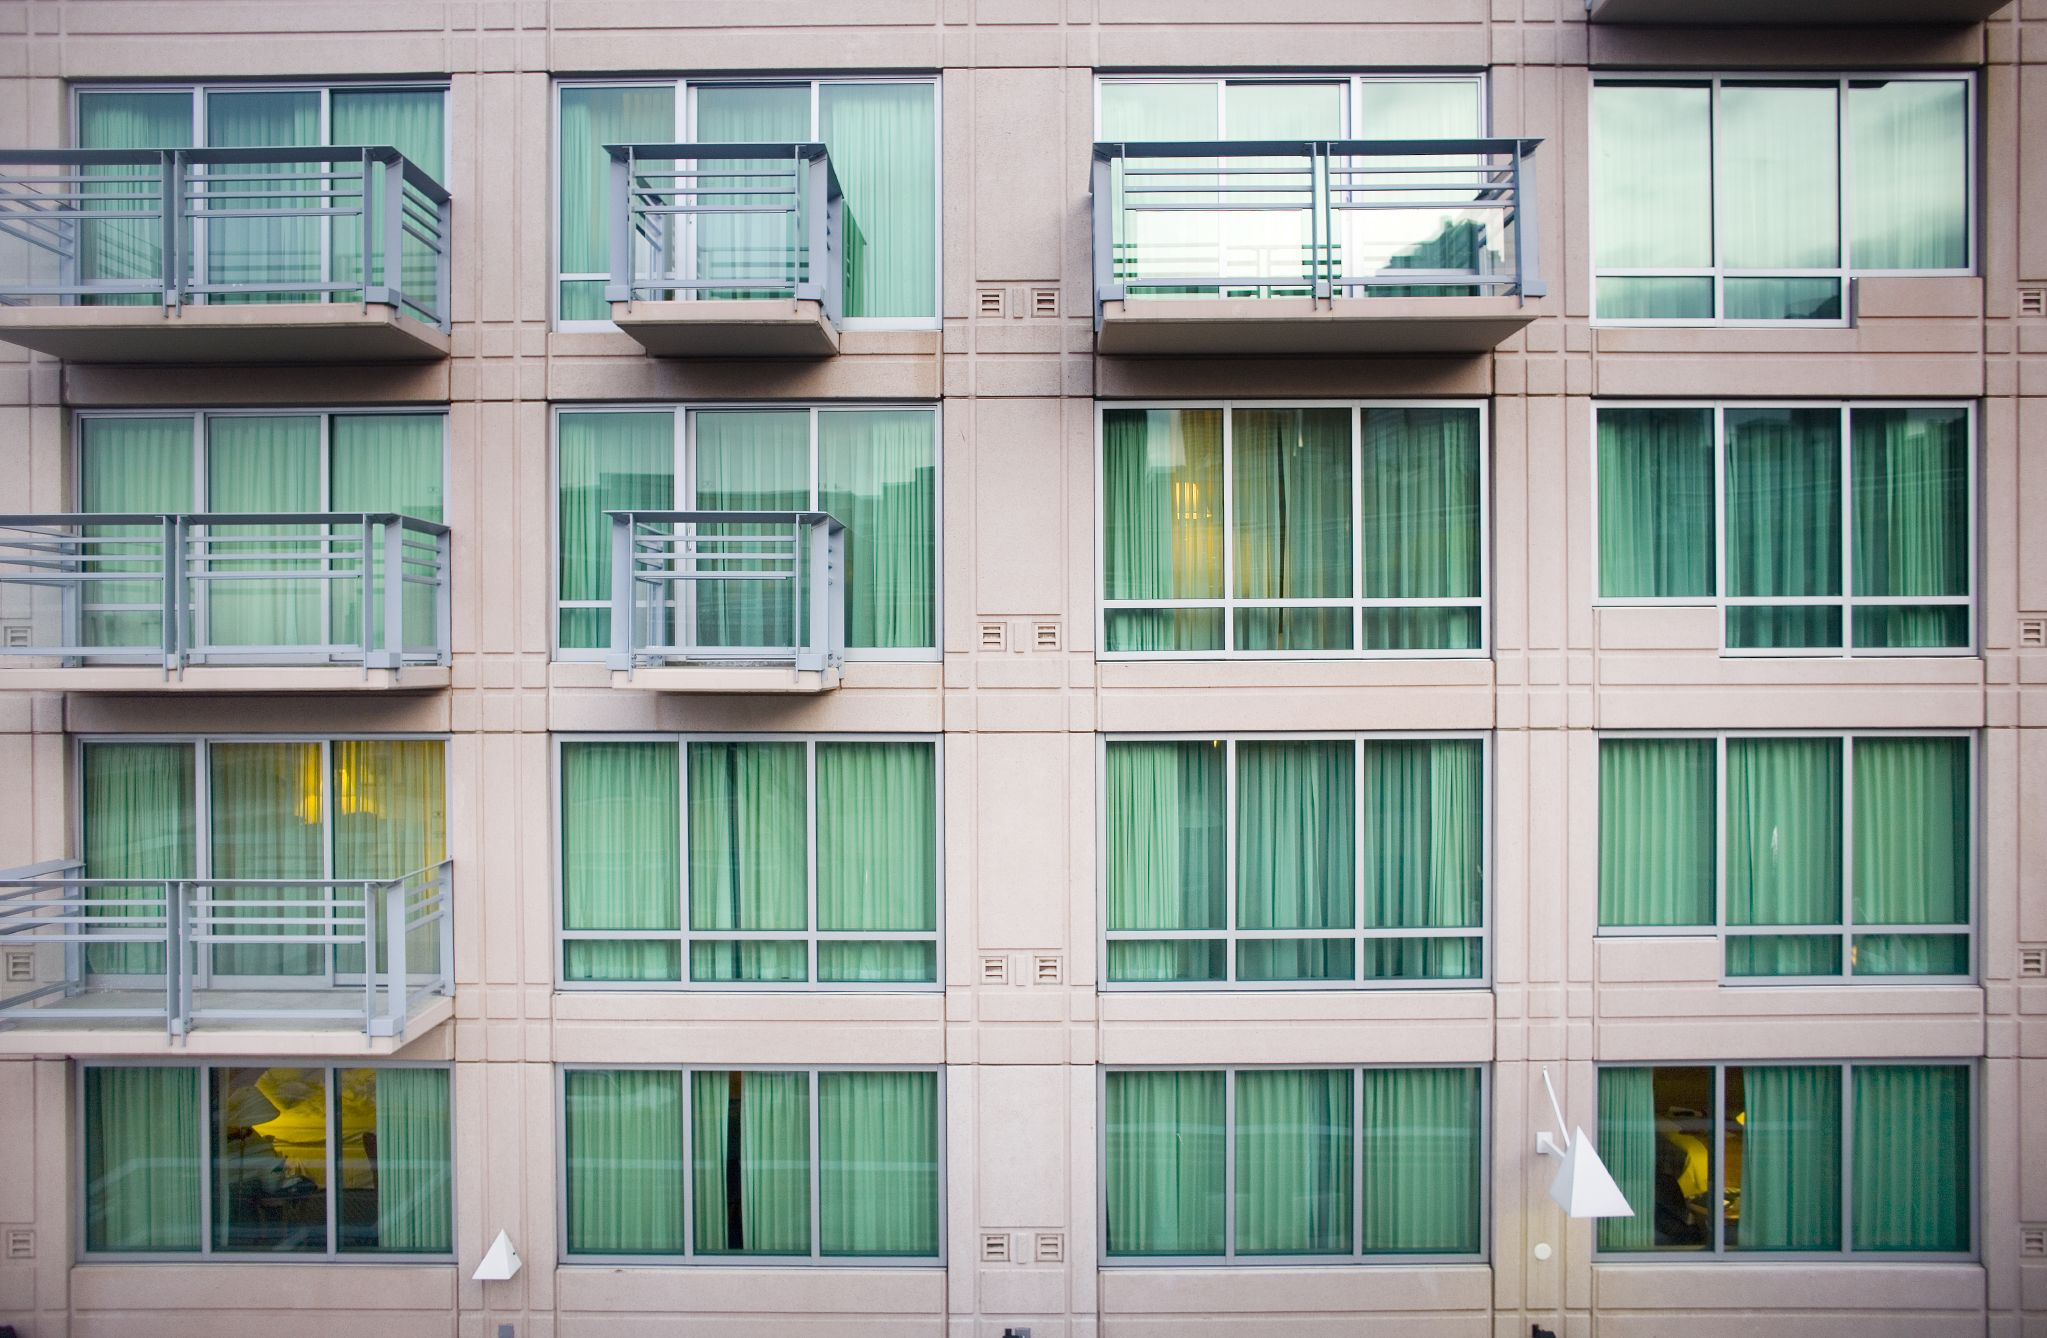 Three rows of floor to ceiling windows on the outside of a beige building with intermittent balconies.